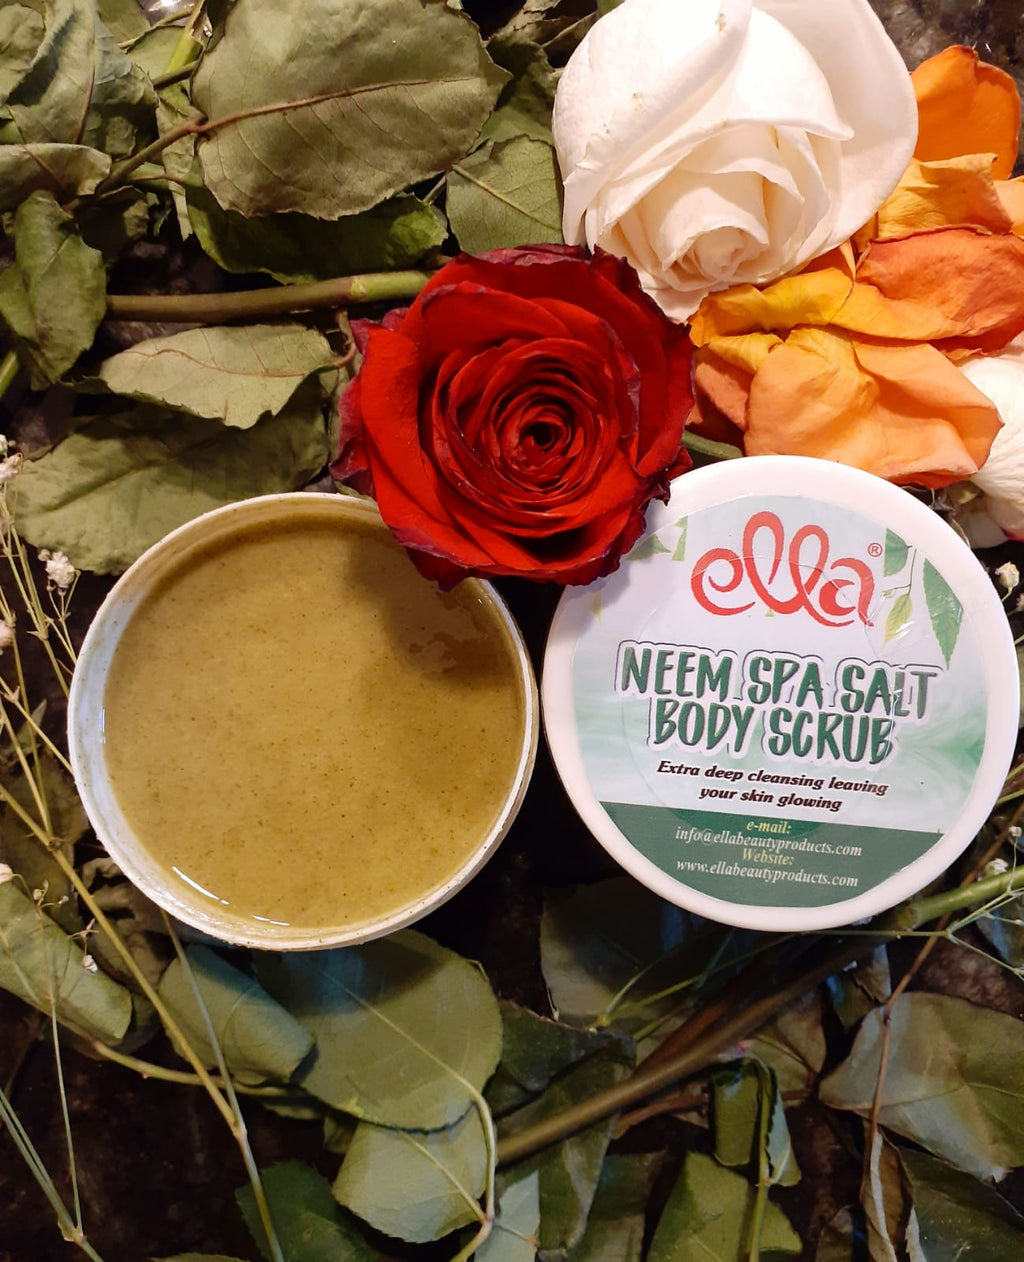 Ella Organic Beauty Products - Neem Spa Salt Body Scrub